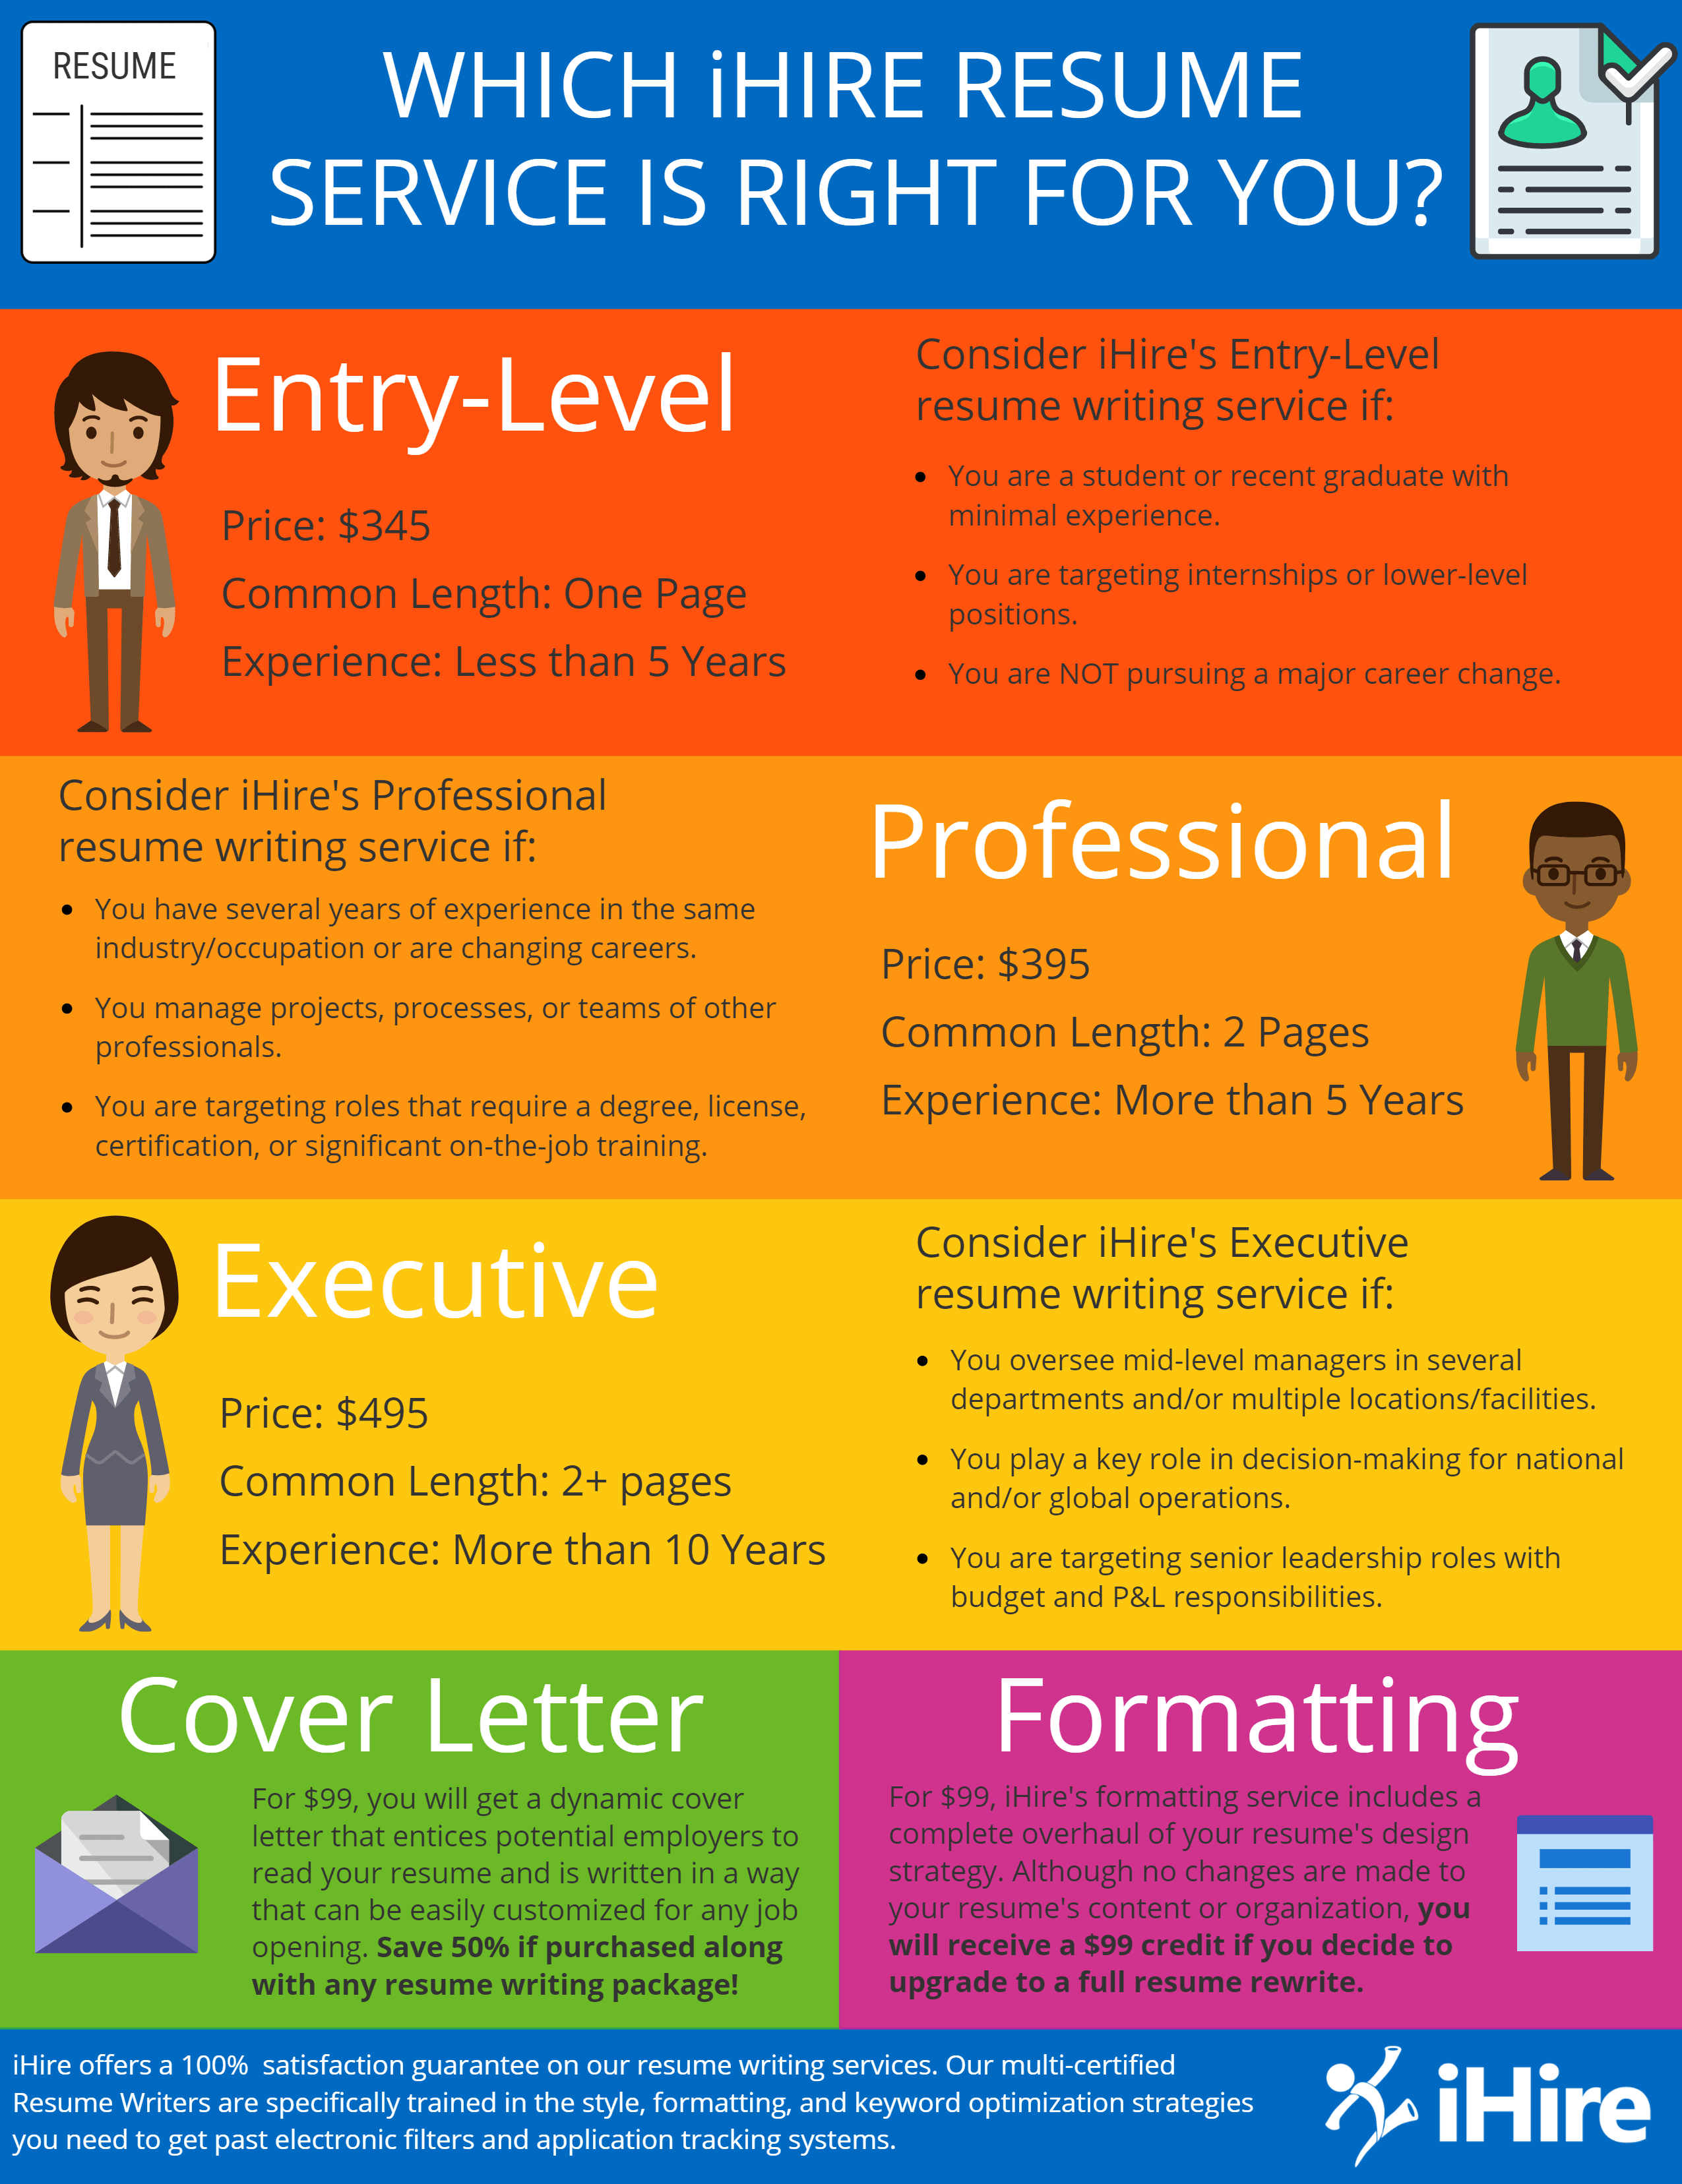 Add This Infographic To Your Site By Copying This Code: